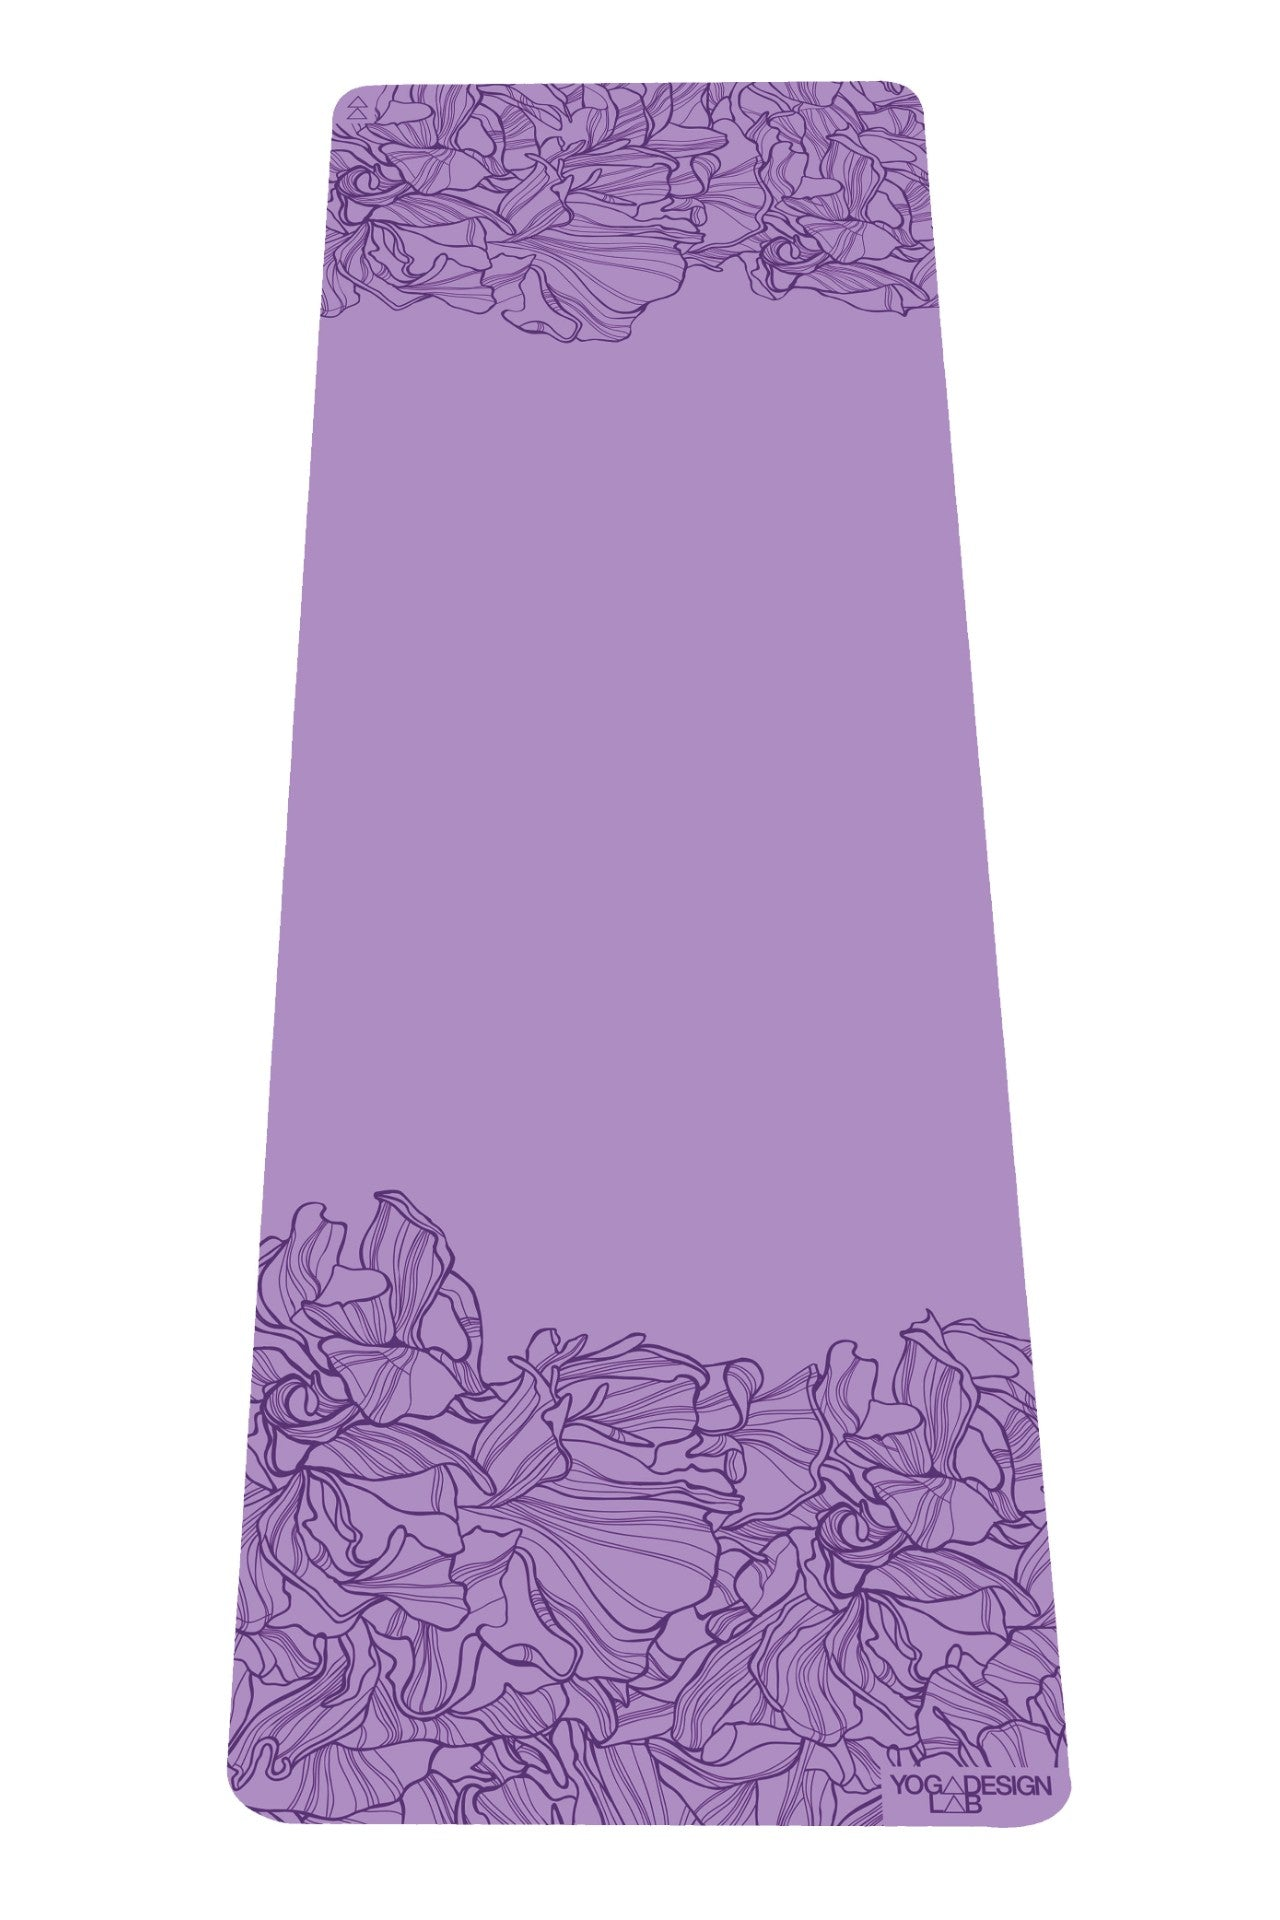 Aadrika Lavender INFINITY MAT - EMAIL US TO RESERVE YOURS FROM OUR RESTOCKS